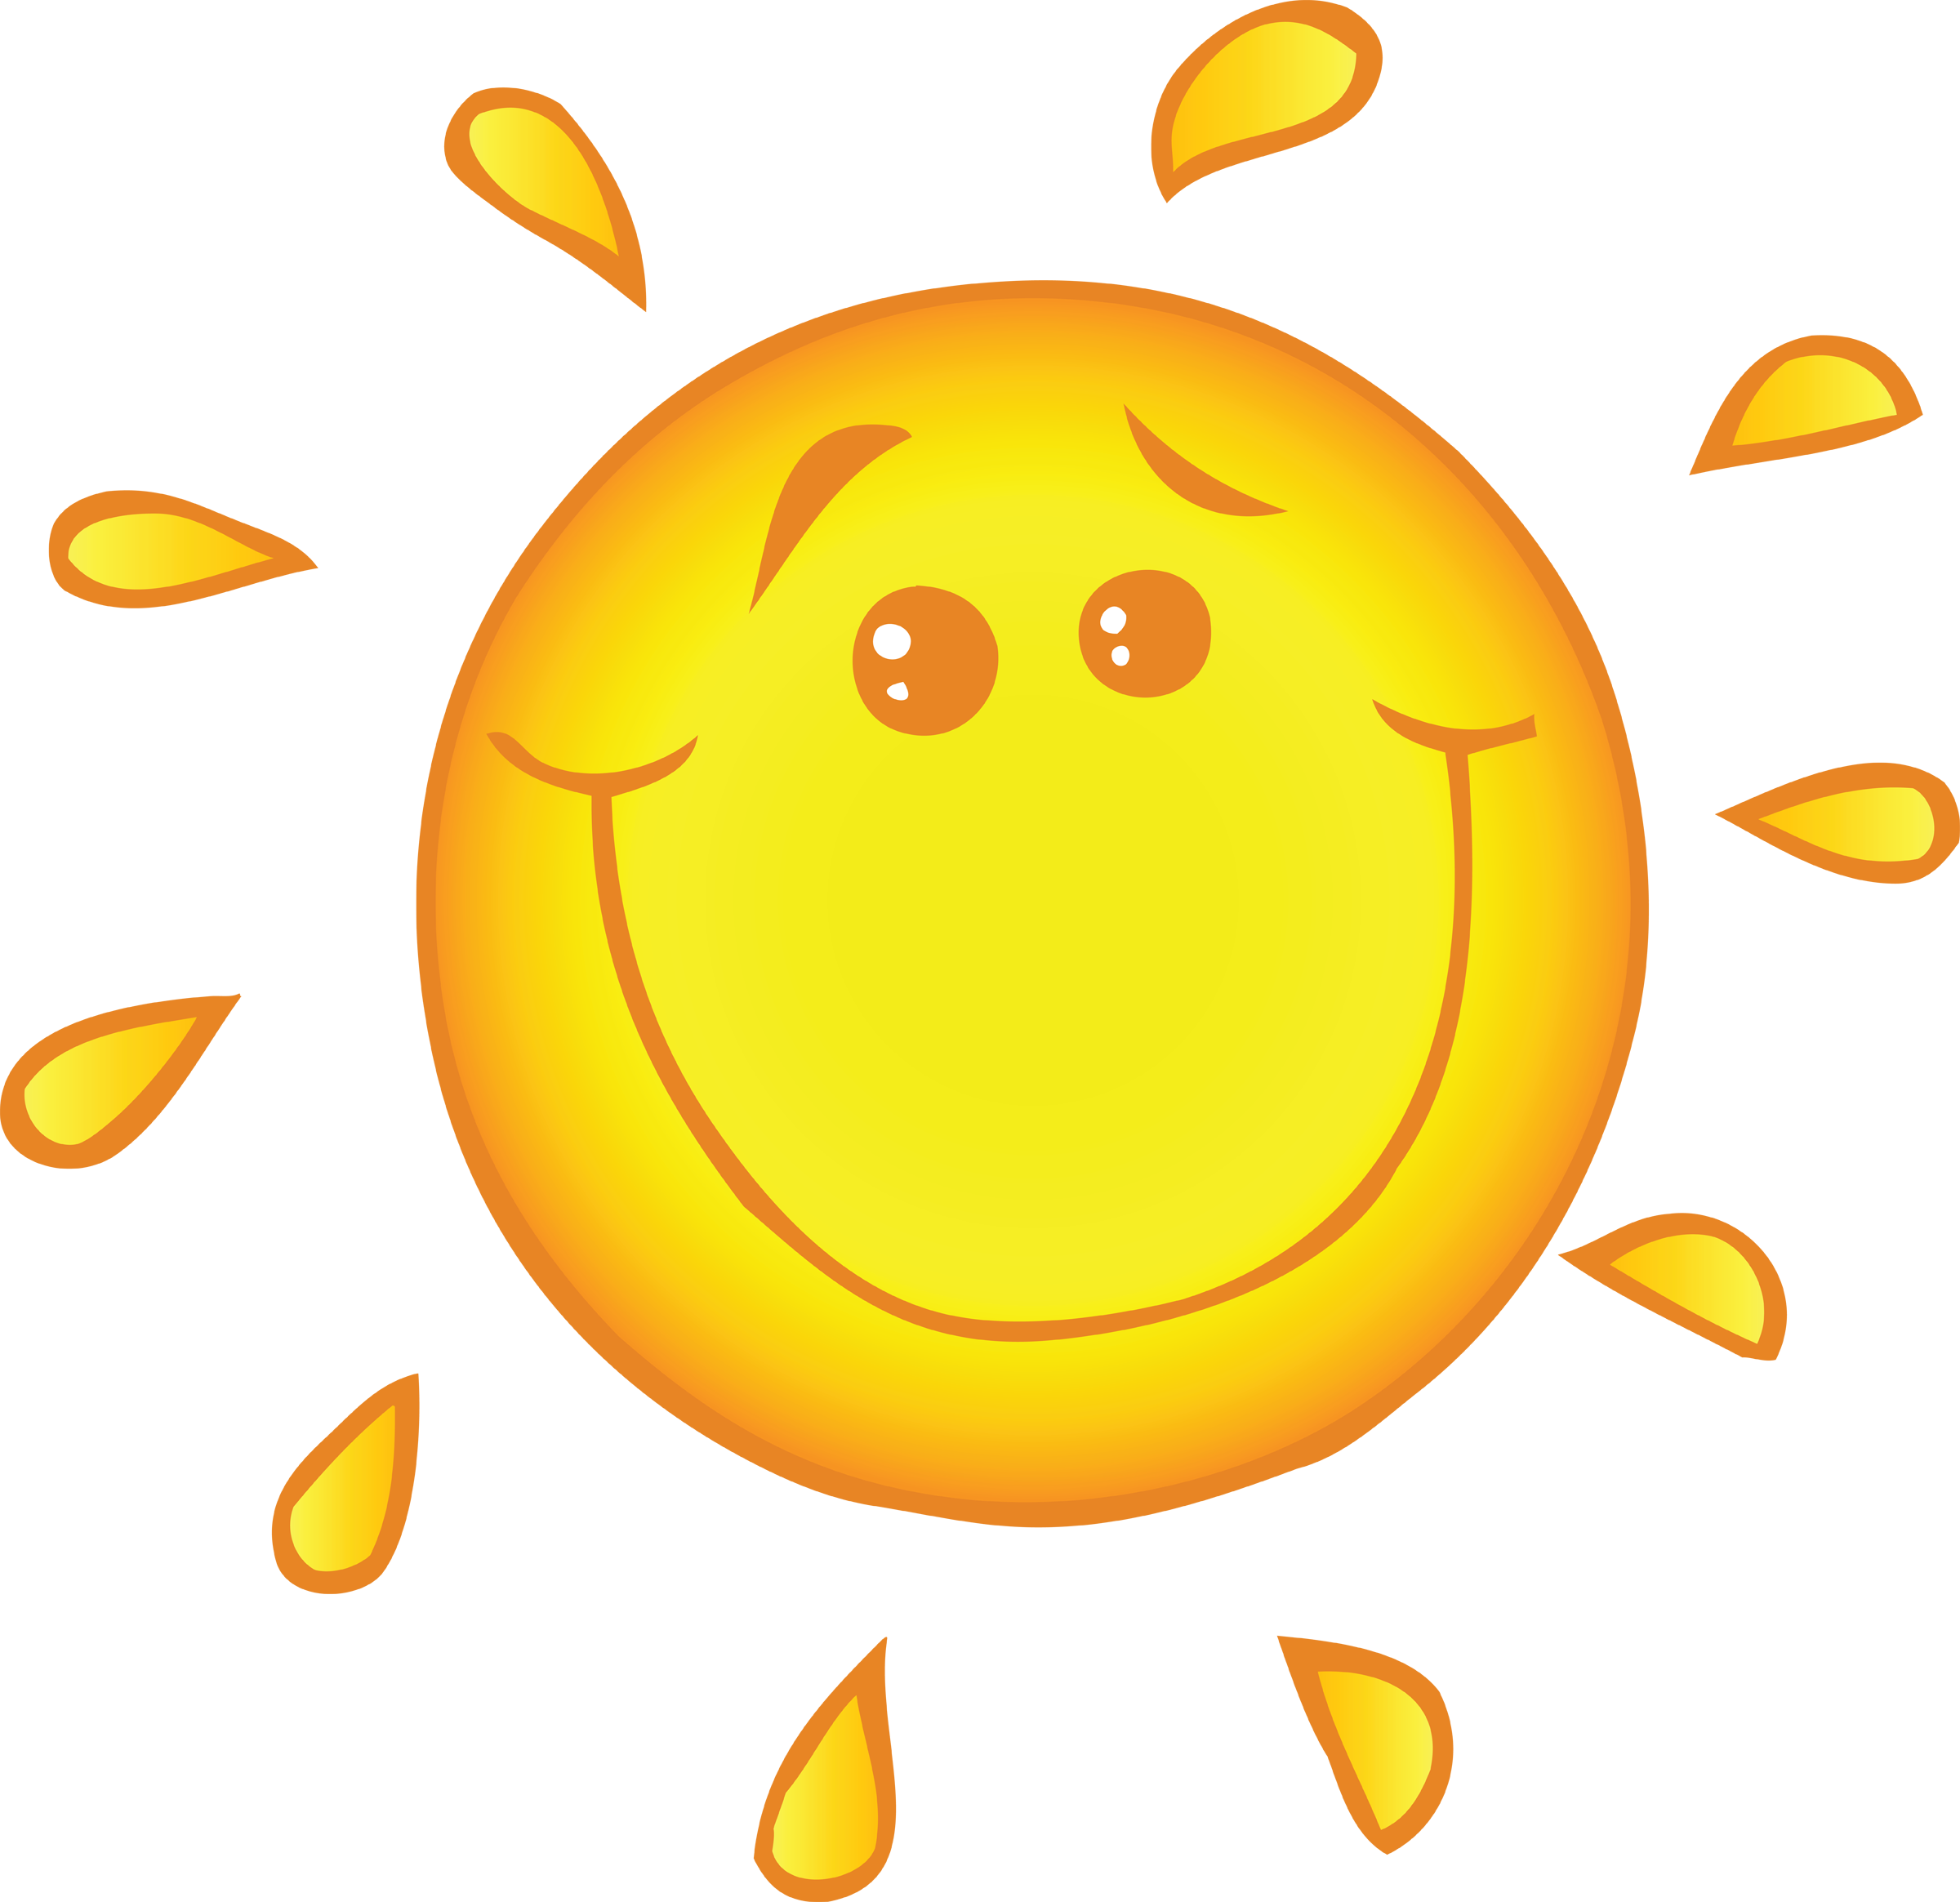 Sun cartoon png. Free download clip art